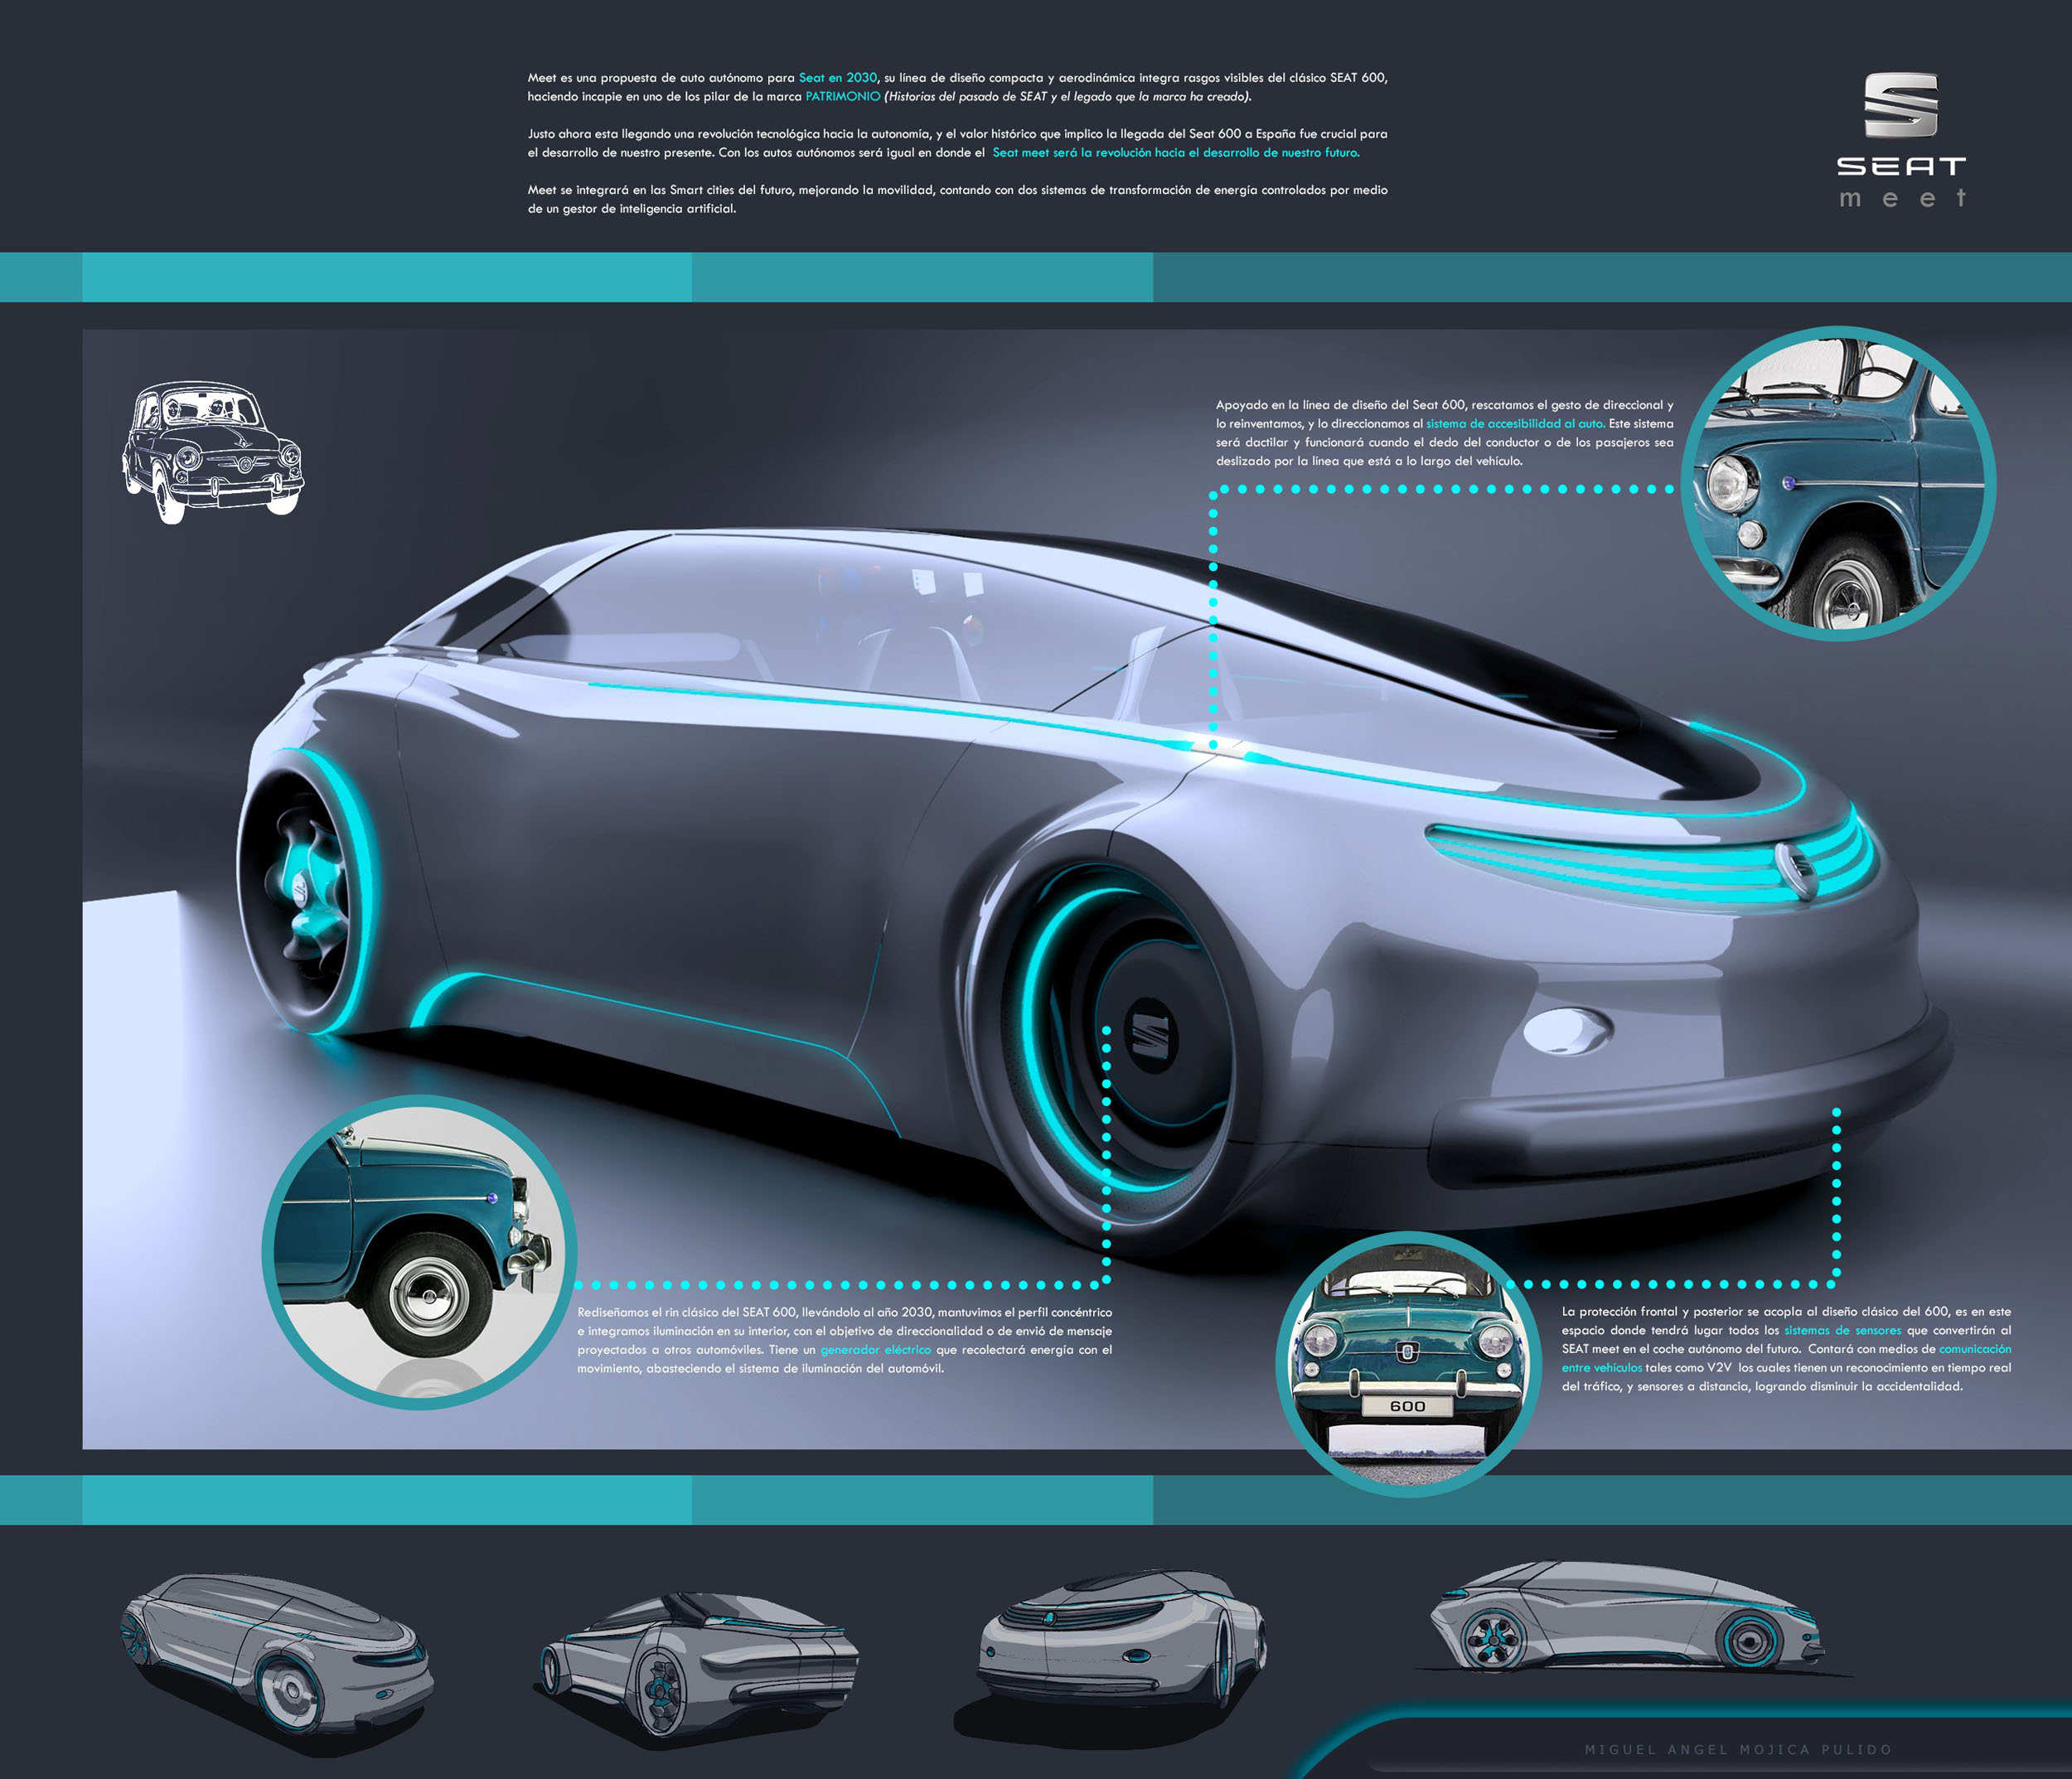 SEAT Meet Autonomous Car Concept Proposal For The Year Of